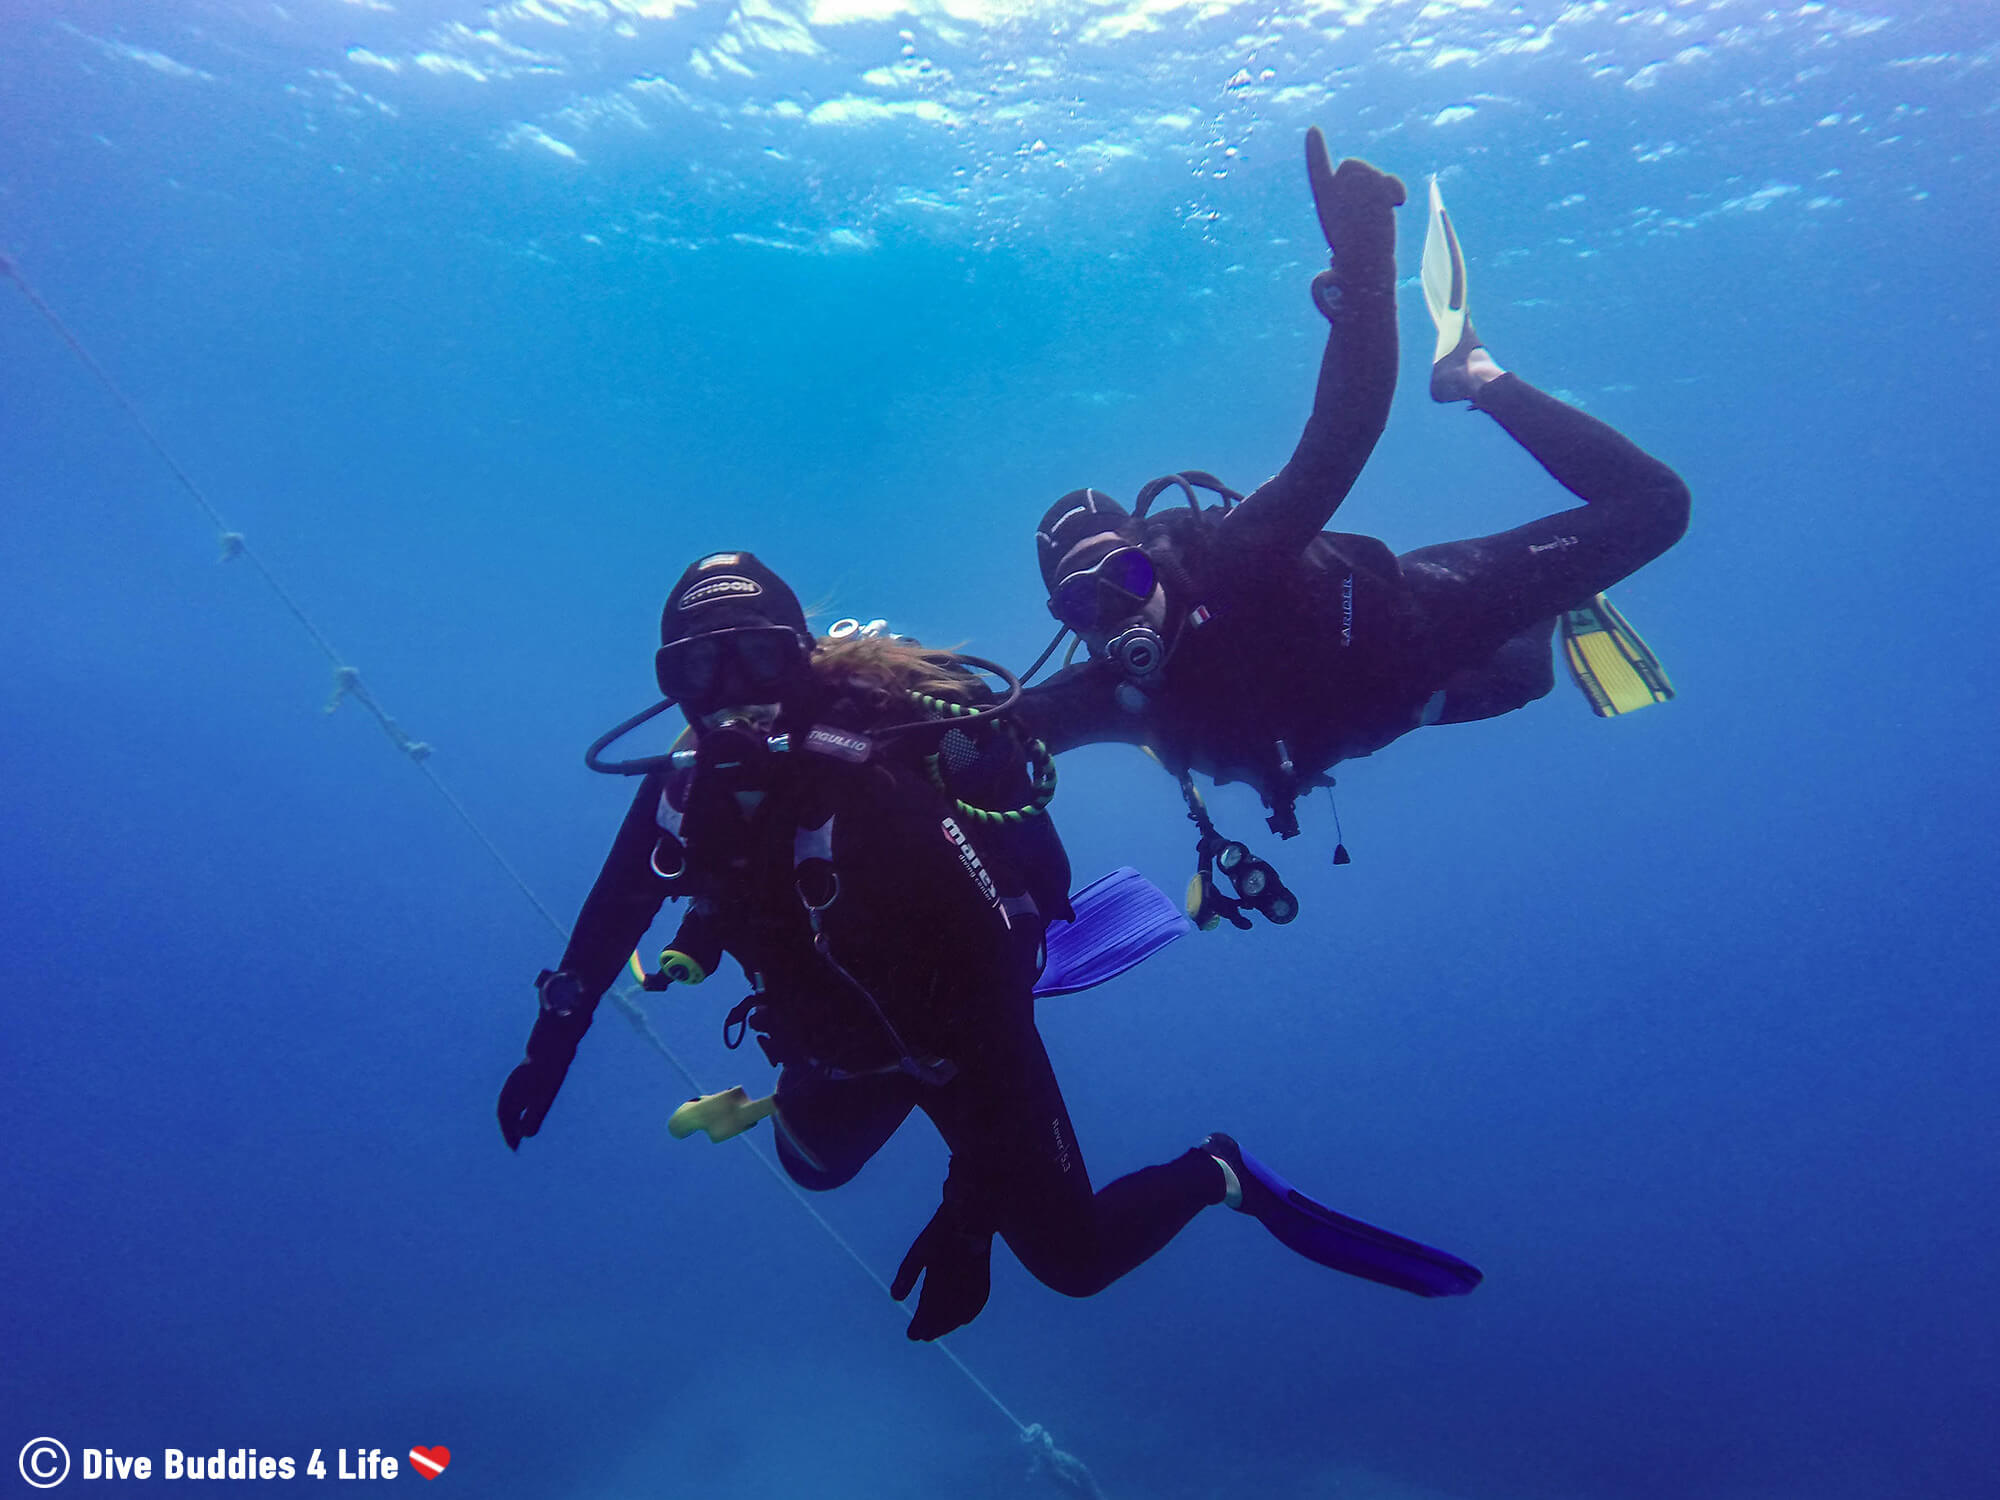 Ali And Joey Scuba Diving Together In An Attempt To Encourage More People To Protect The Worlds Oceans